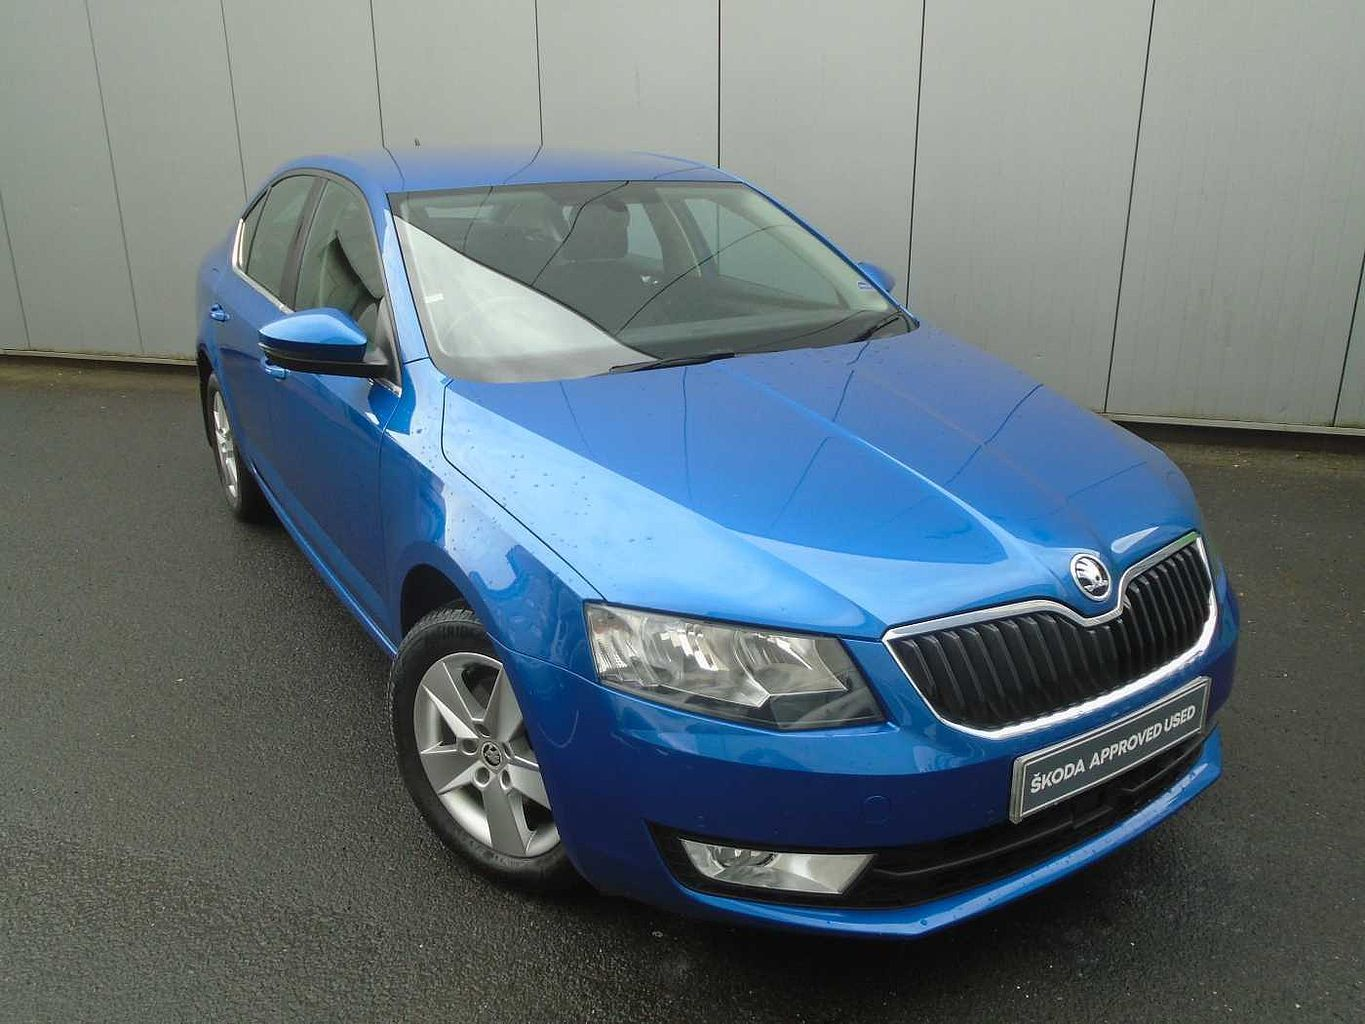 ŠKODA Octavia 2.0 TDI 150 PS 6G Man SE Technology